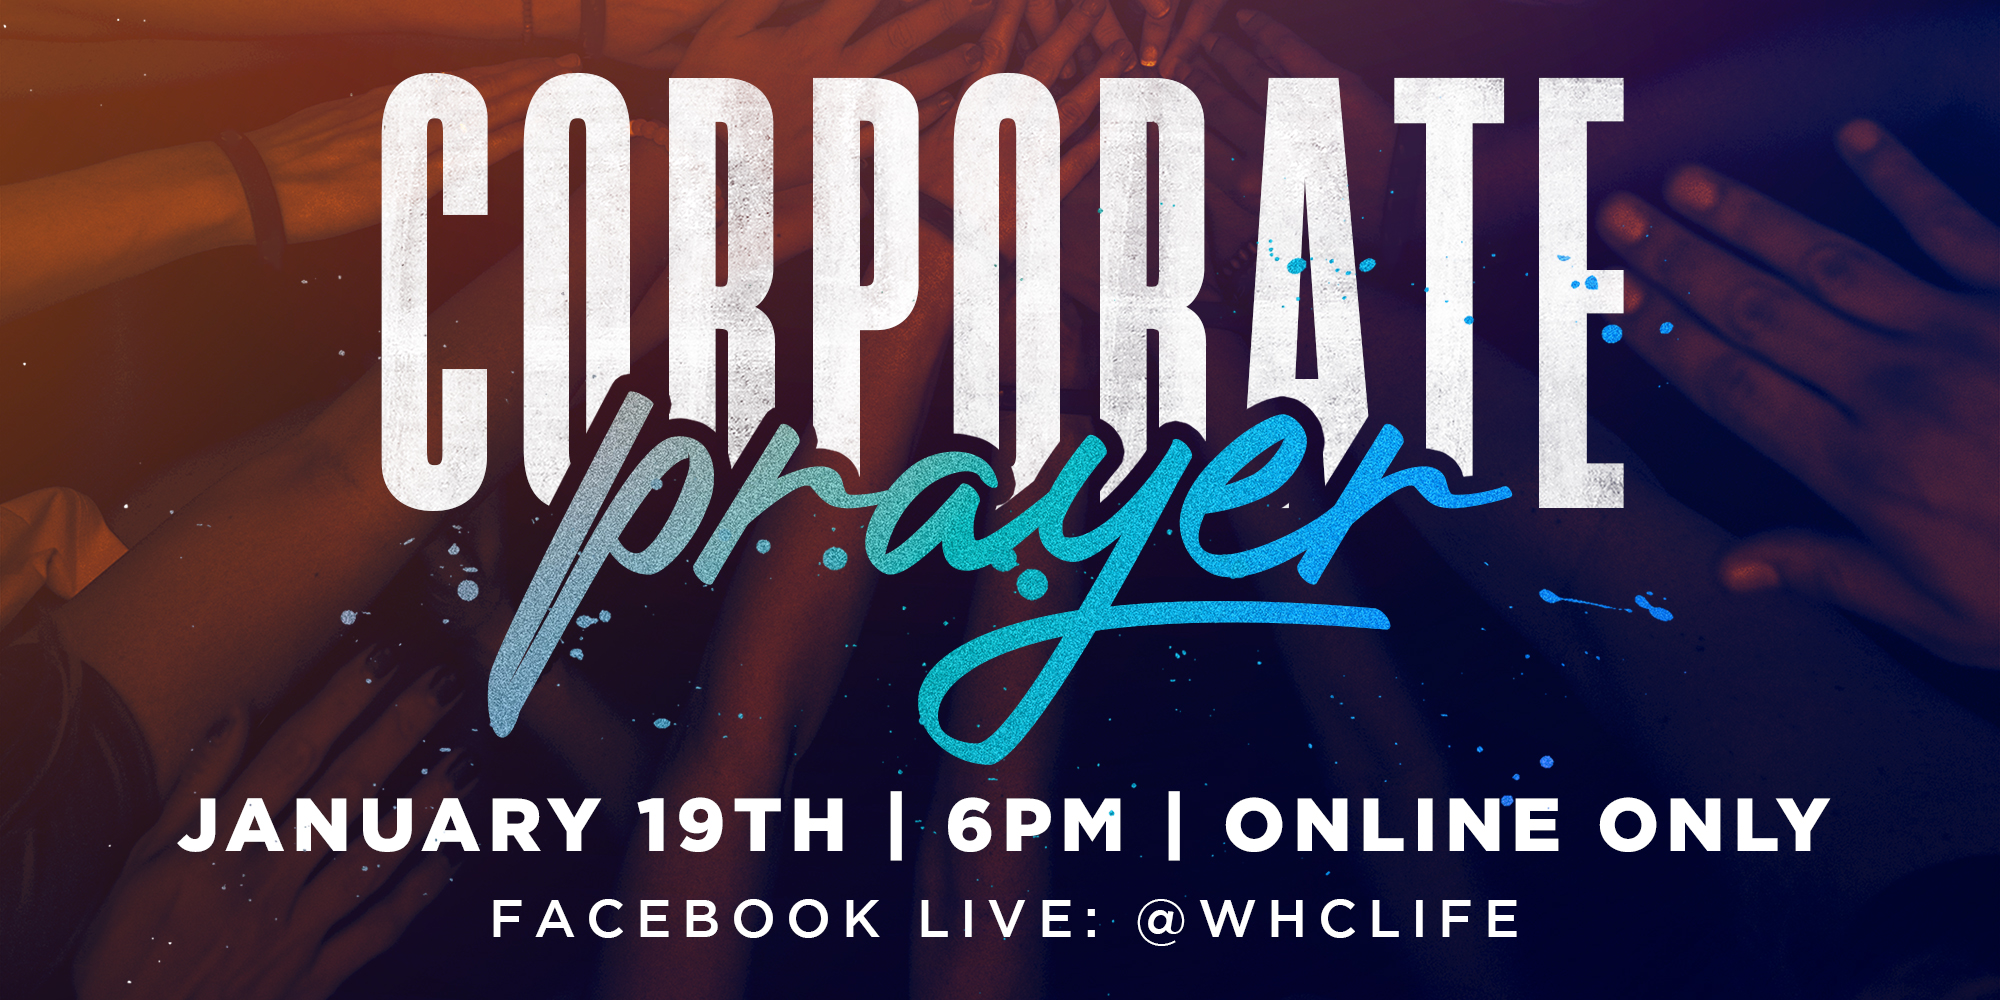 Corporate Prayer Beginning January 12th 6PM Facebook LIVE: @WHCLIFE